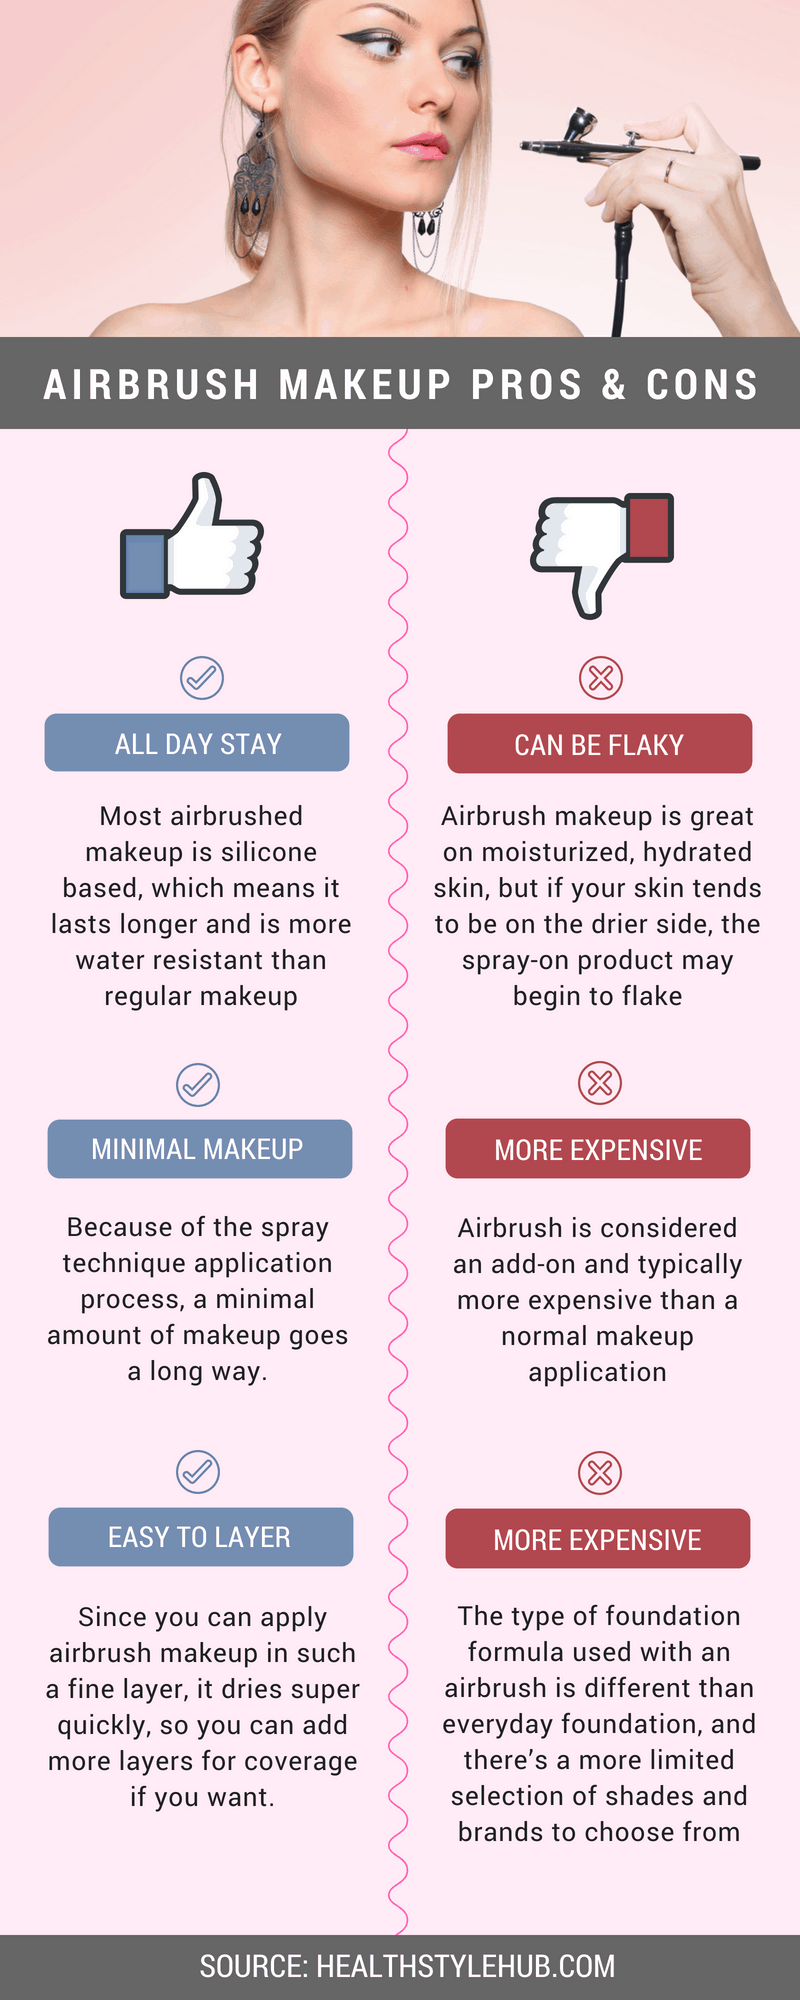 airbrush makeup pros cons